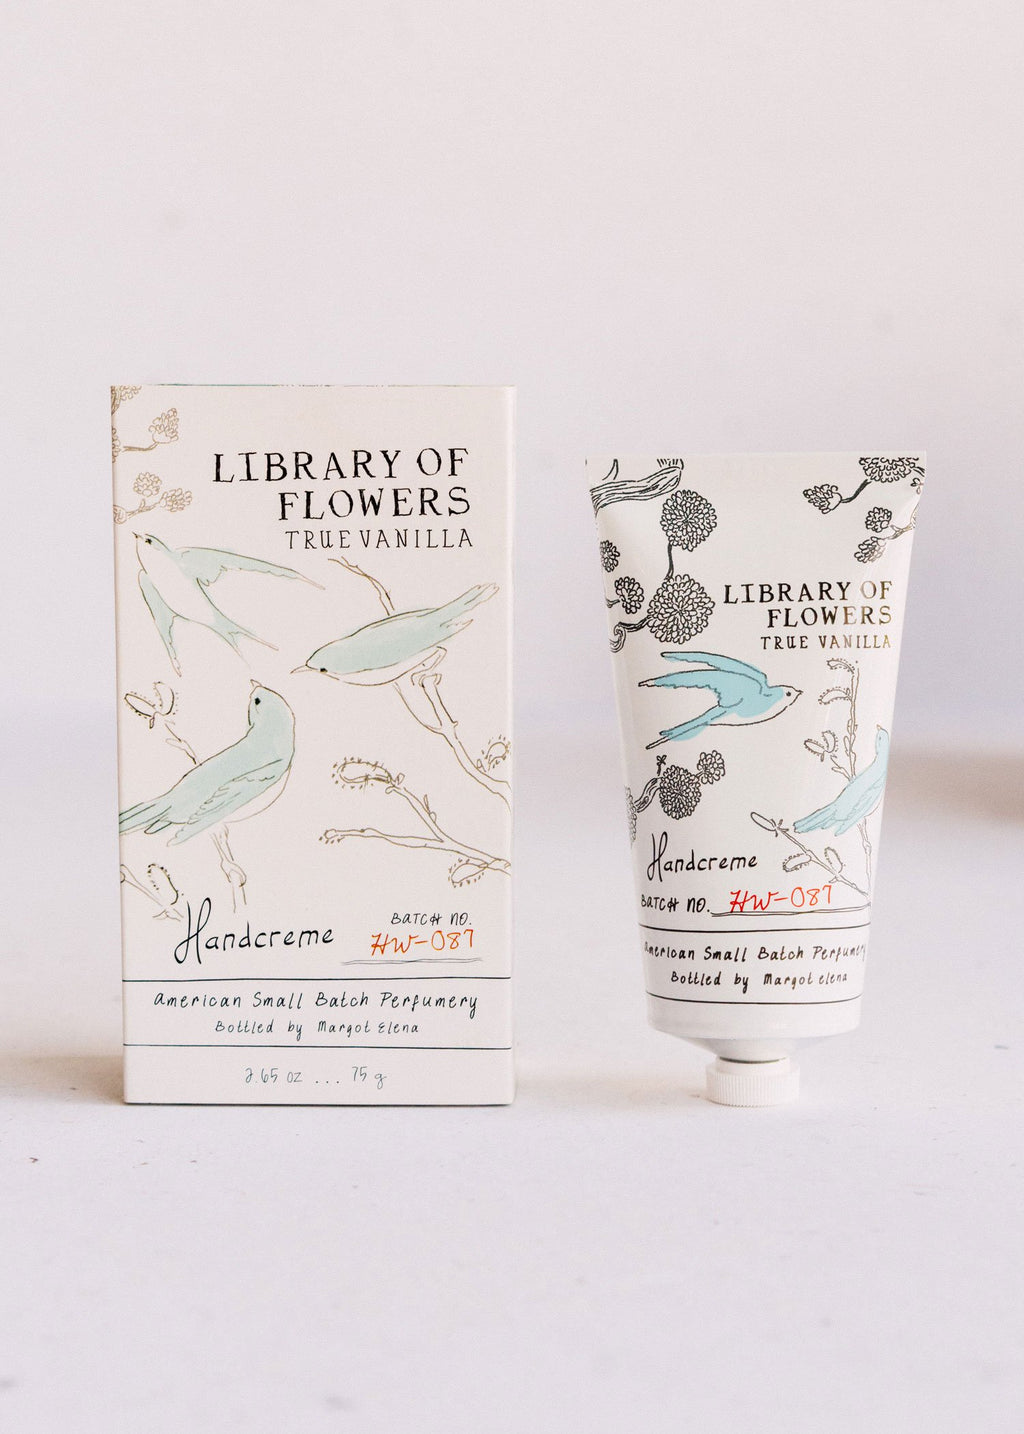 LIBRARY OF FLOWERS |True Vanilla Handcreme